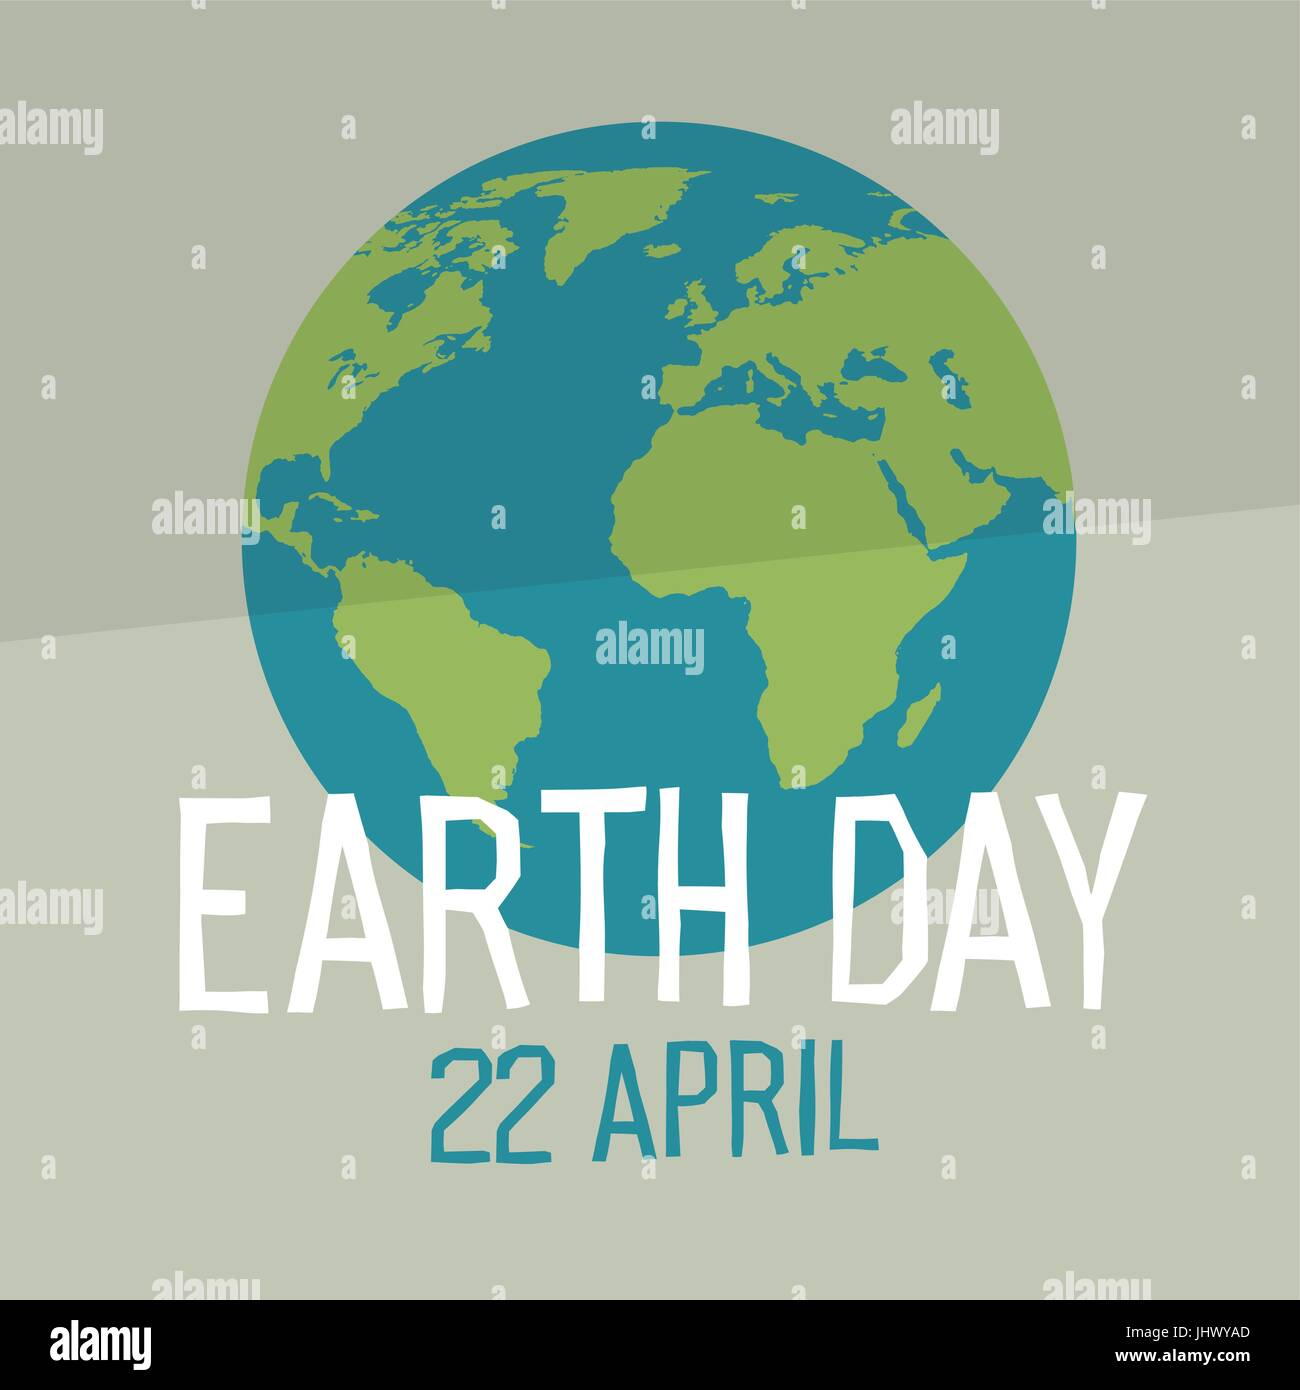 Earth day poster design in flat style similar world map earth day poster design in flat style similar world map background vector illustration save the planet concept gumiabroncs Choice Image